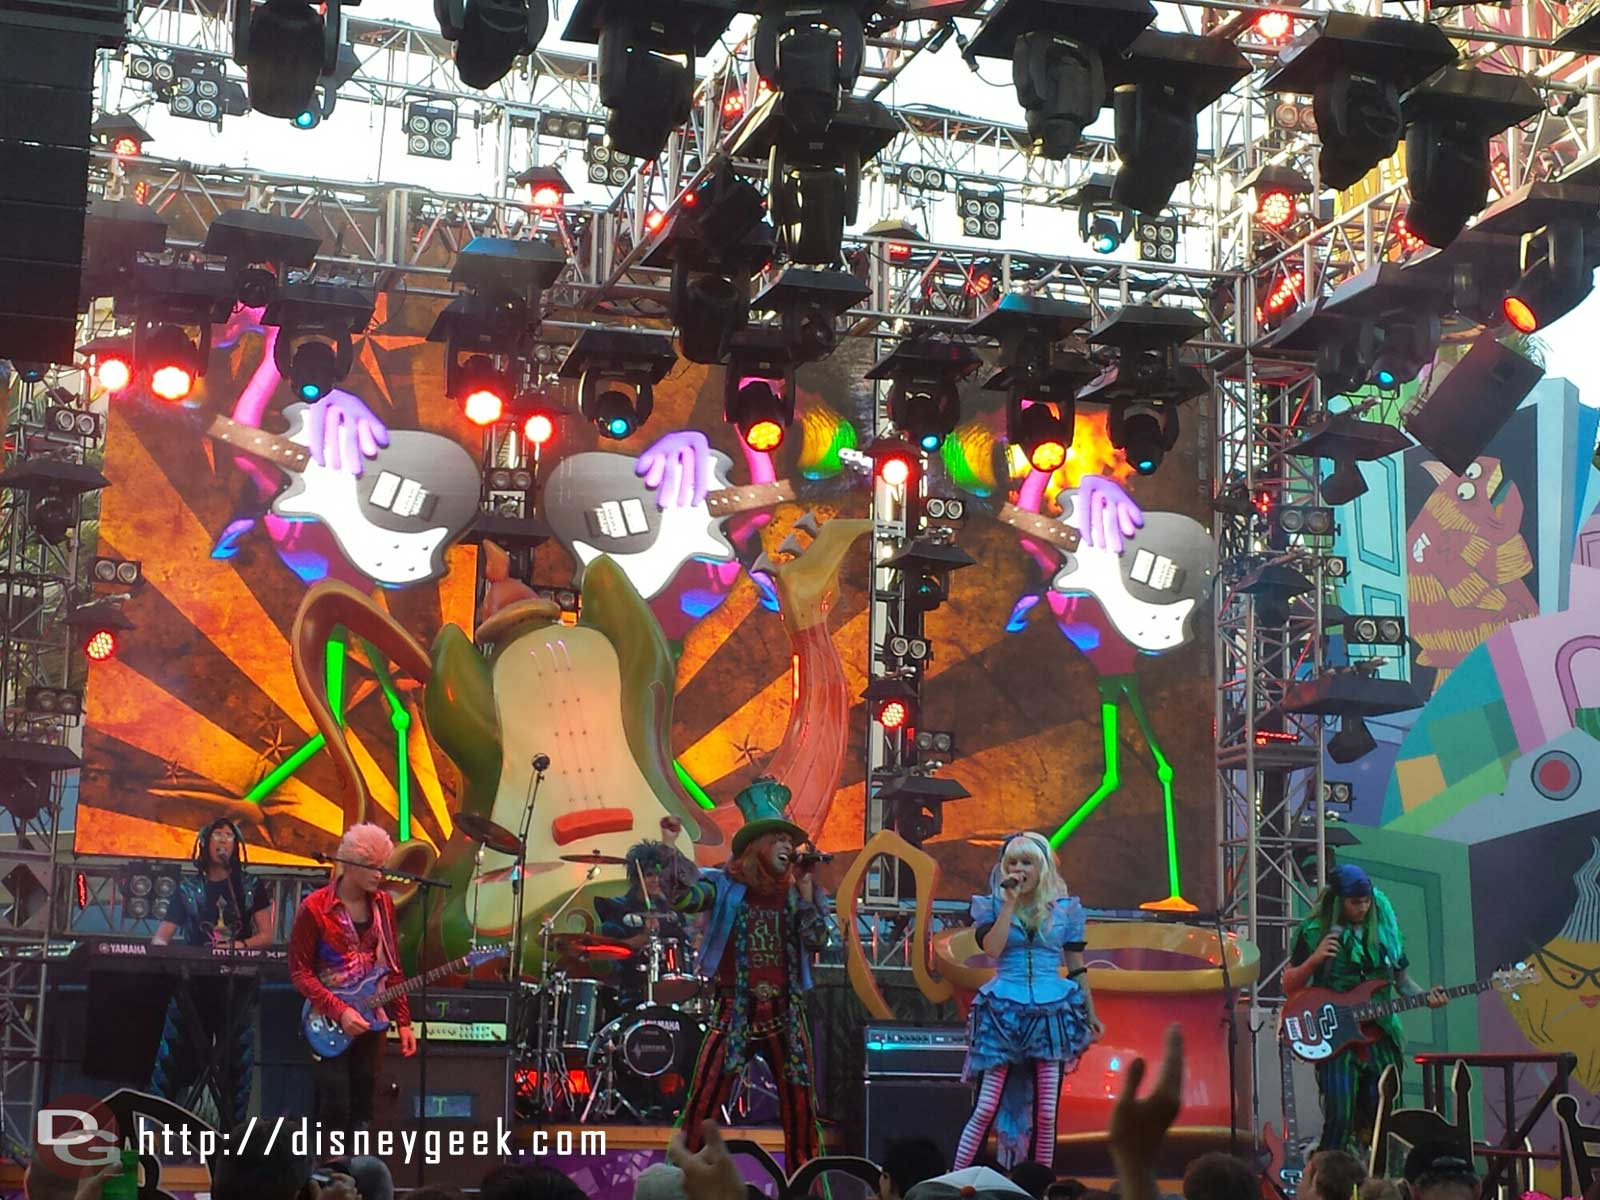 The #MadTParty band performing their opening set of the night